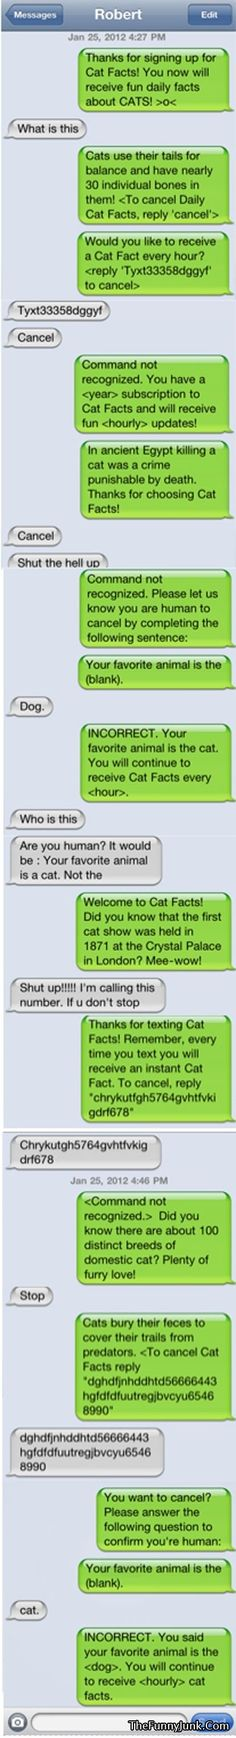 Now This Is How You Troll Someone Properly!